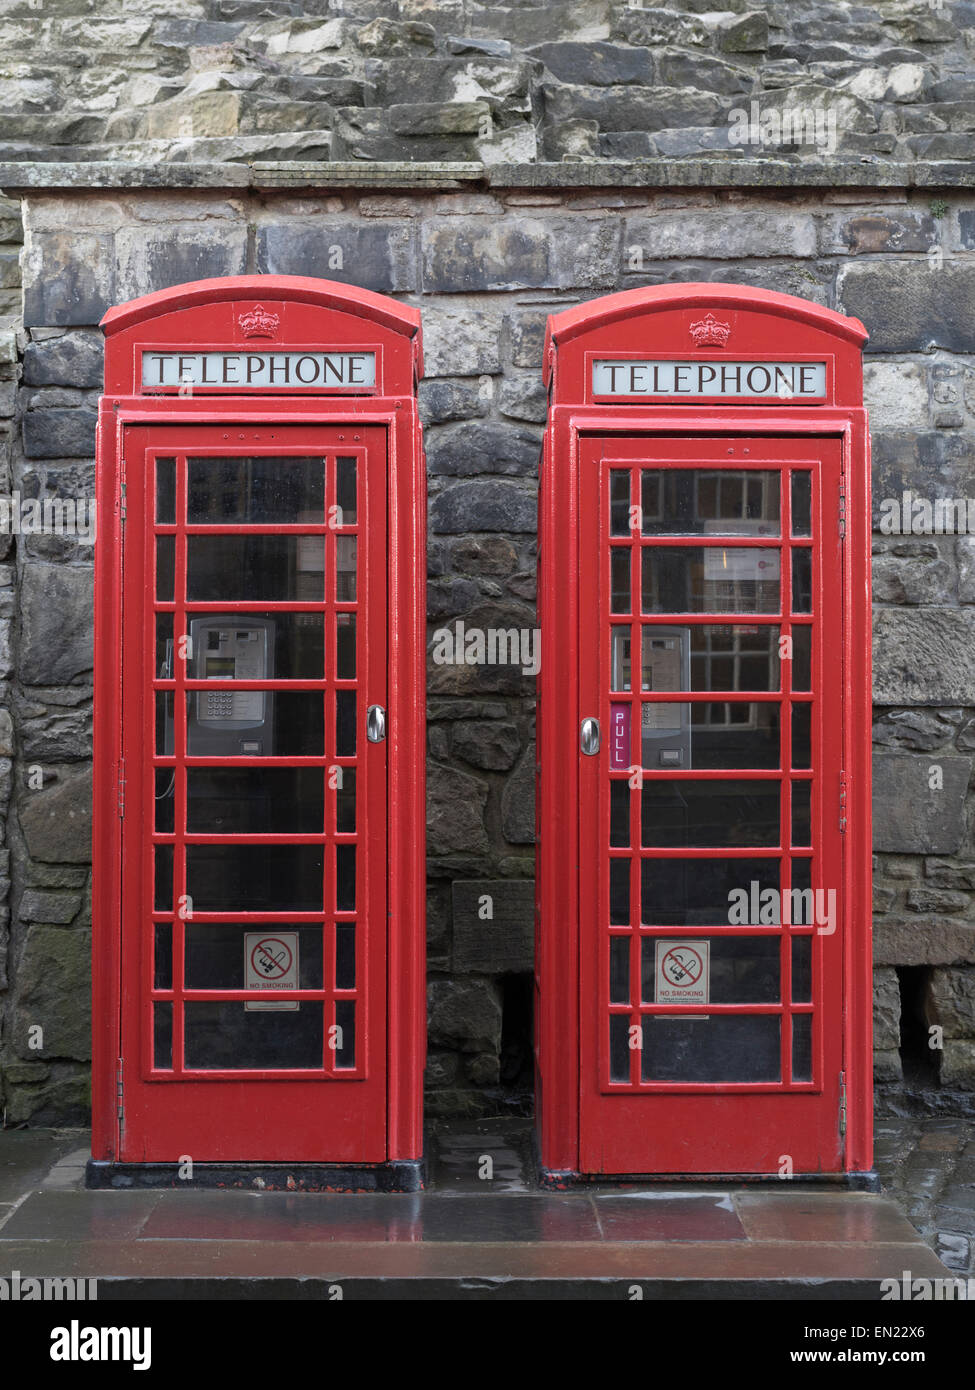 The red telephone box, a telephone kiosk for a public telephone designed by Sir Giles Gilbert Scott - Edinburgh - Stock Image